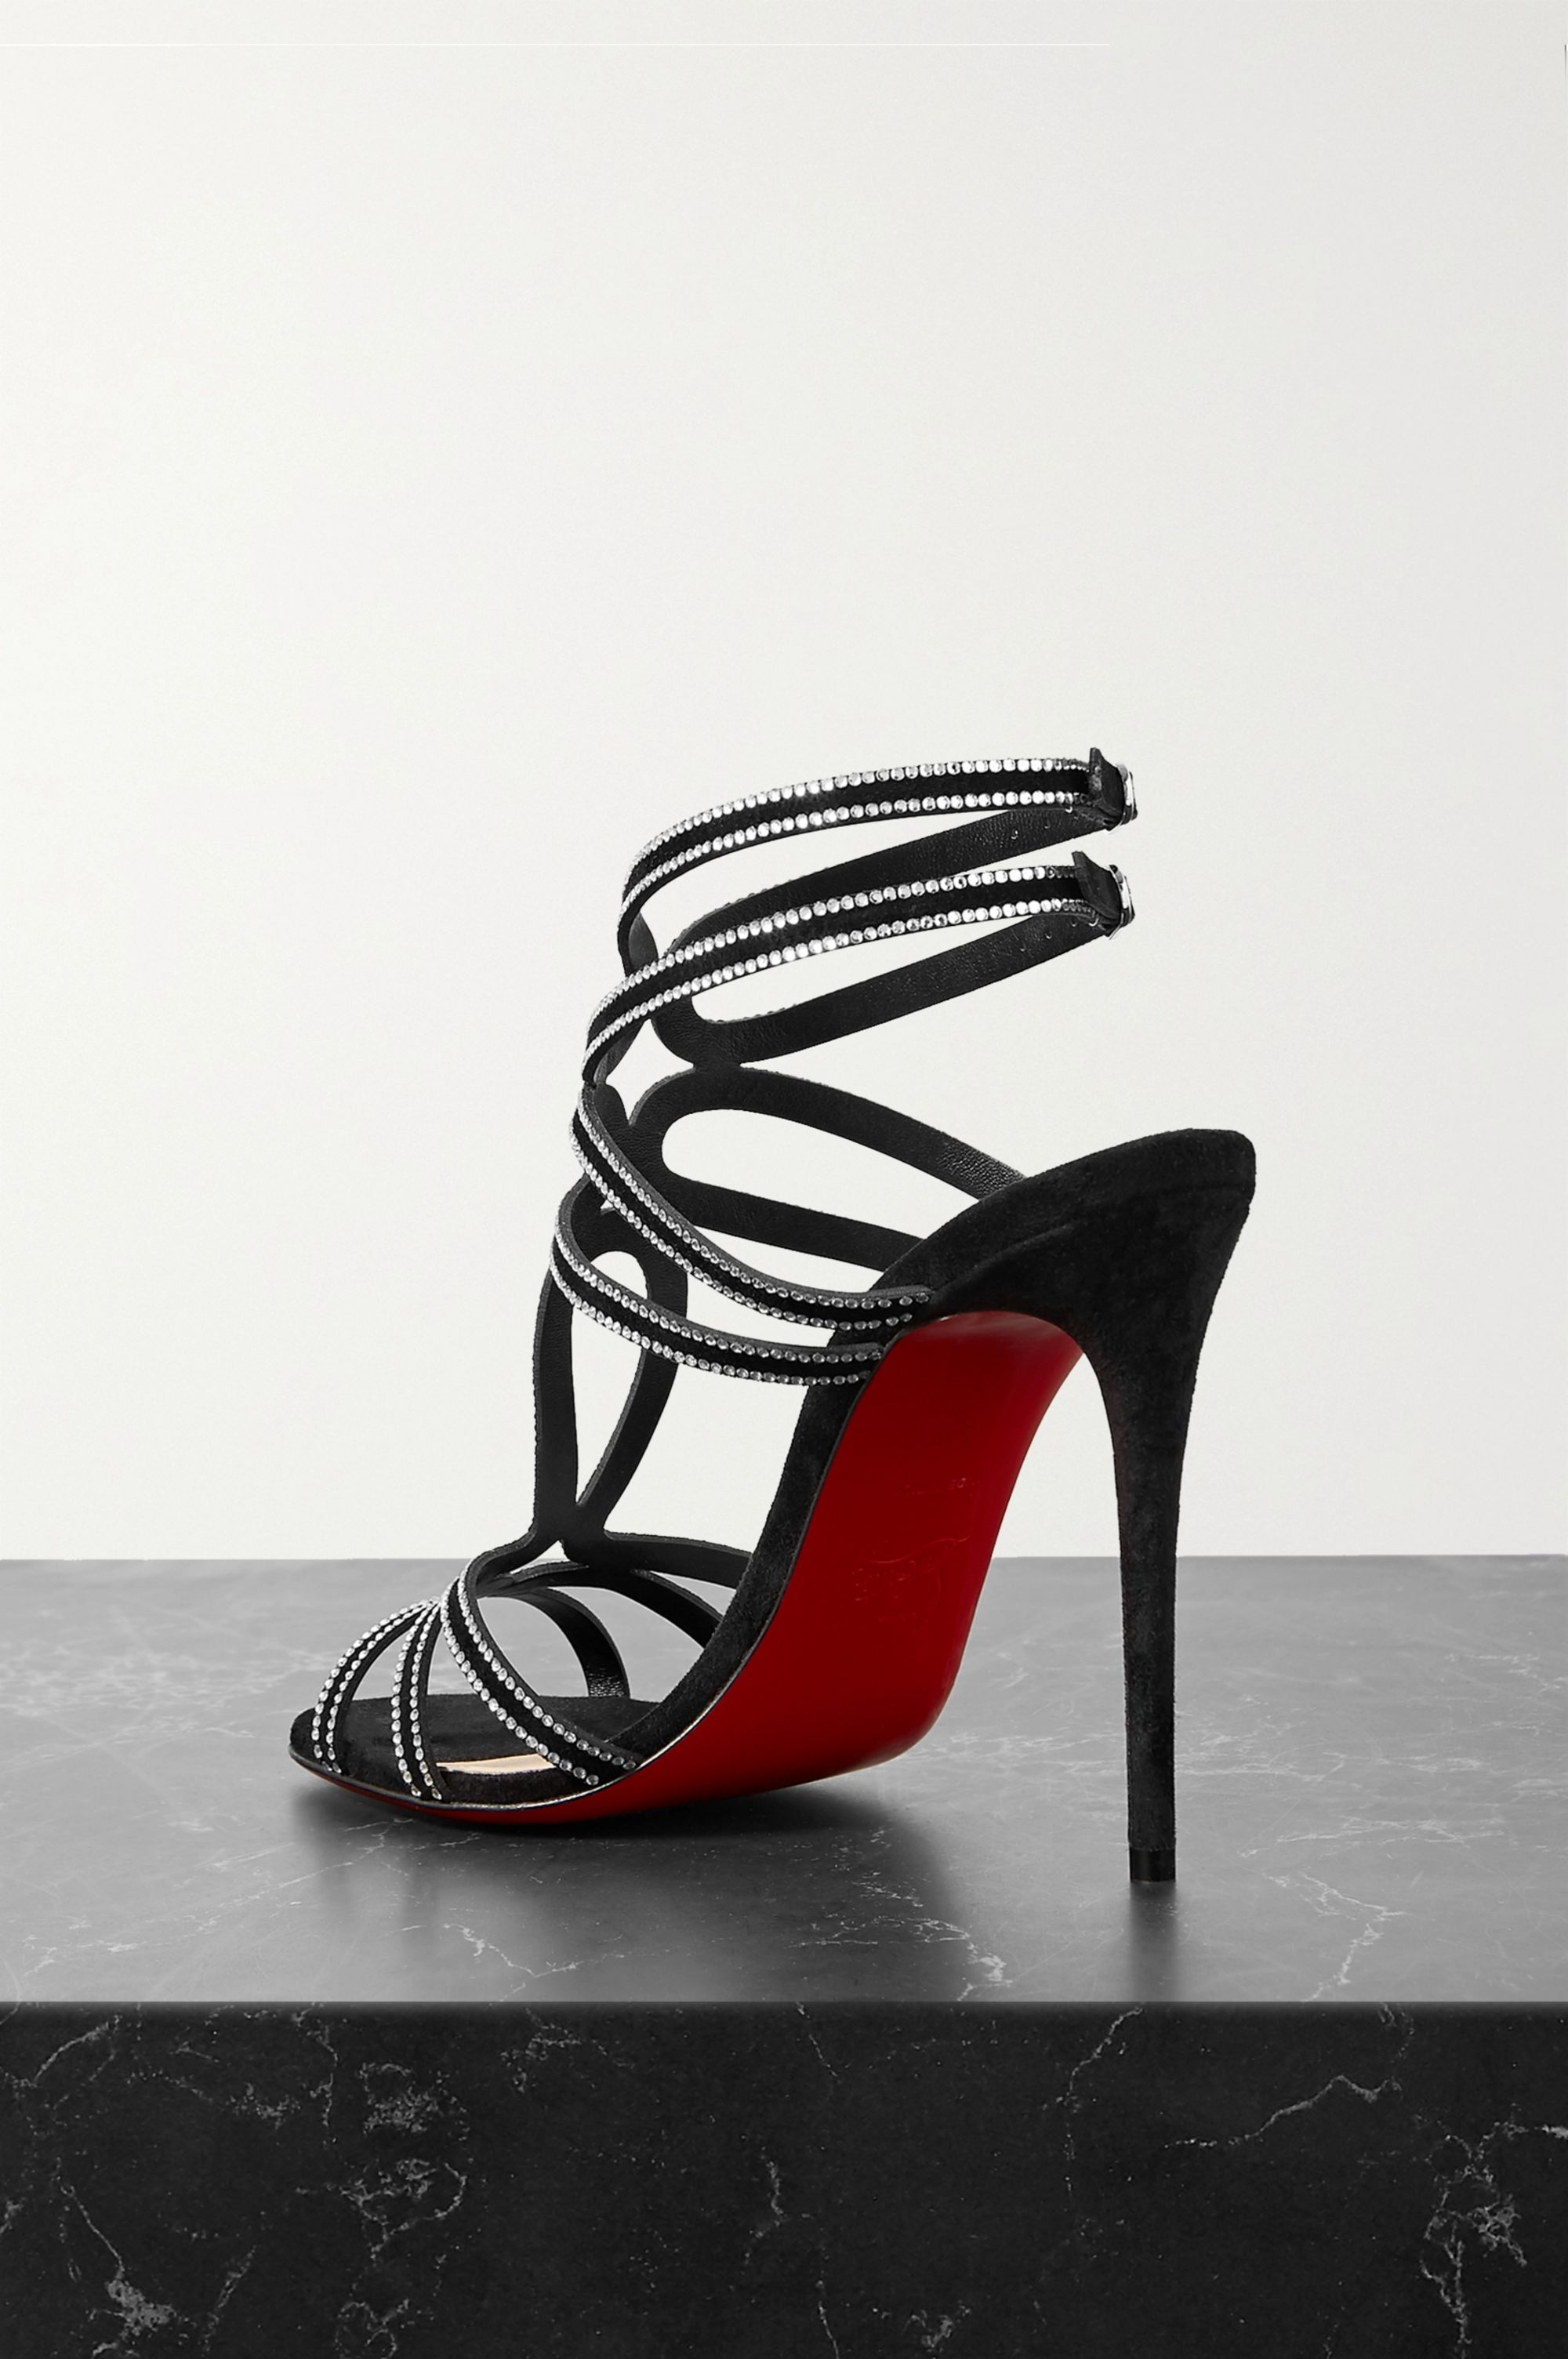 Christian Louboutin Renee Strass 100 crystal-embellished suede sandals